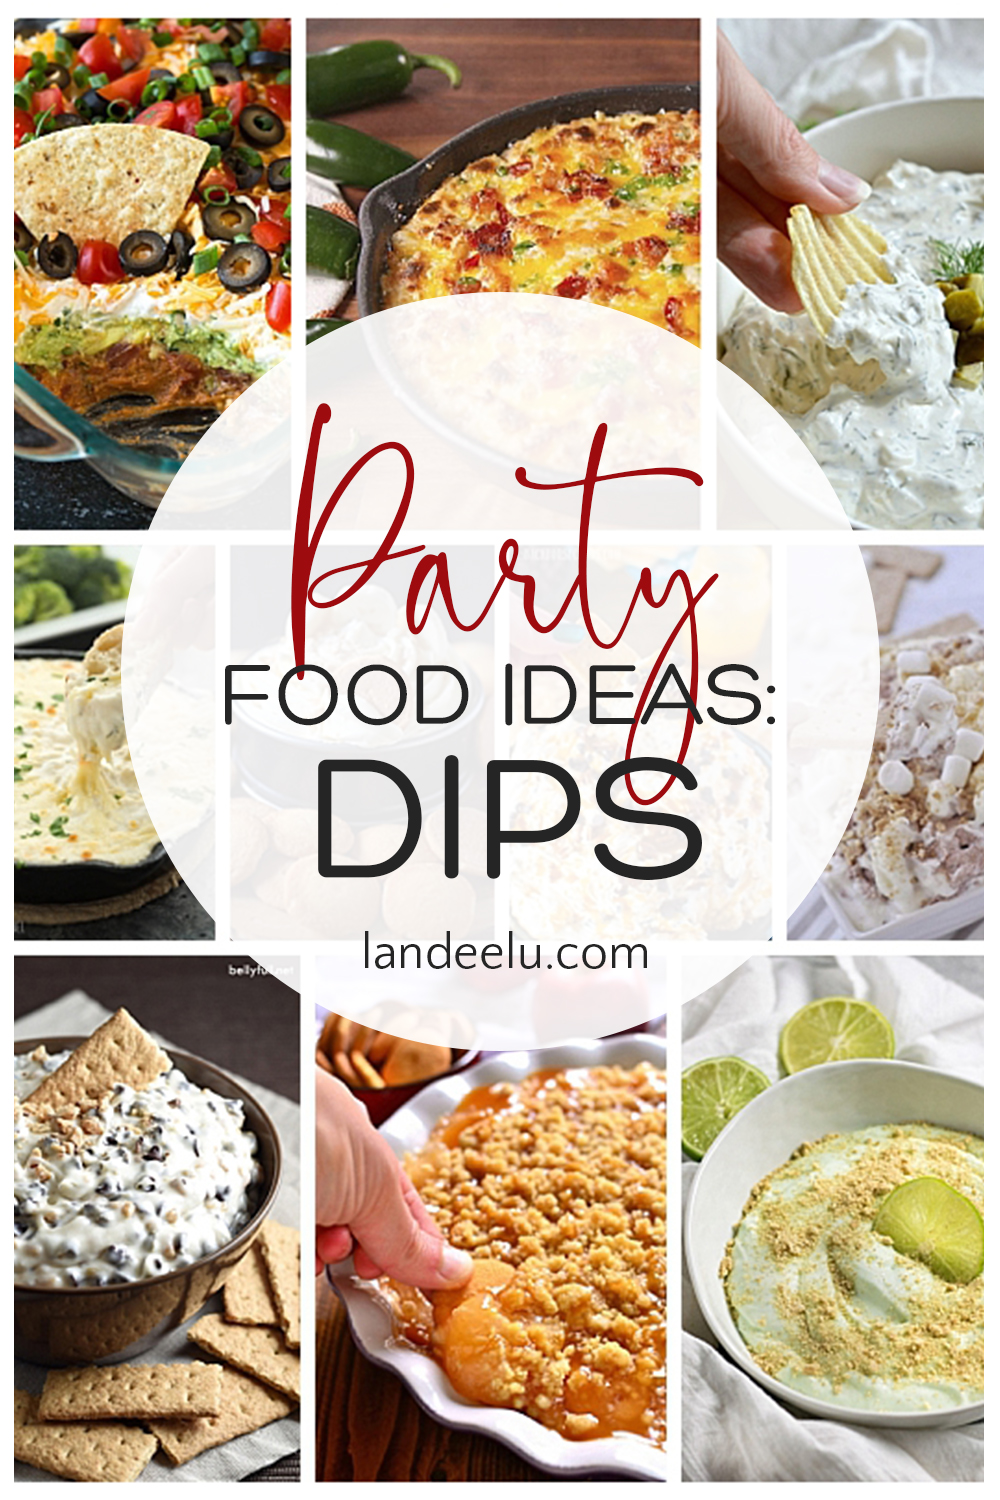 These dip recipes look amazing! Fantastic party food ideas! #partyfood #partyfoodrecipes #dips #diprecipes